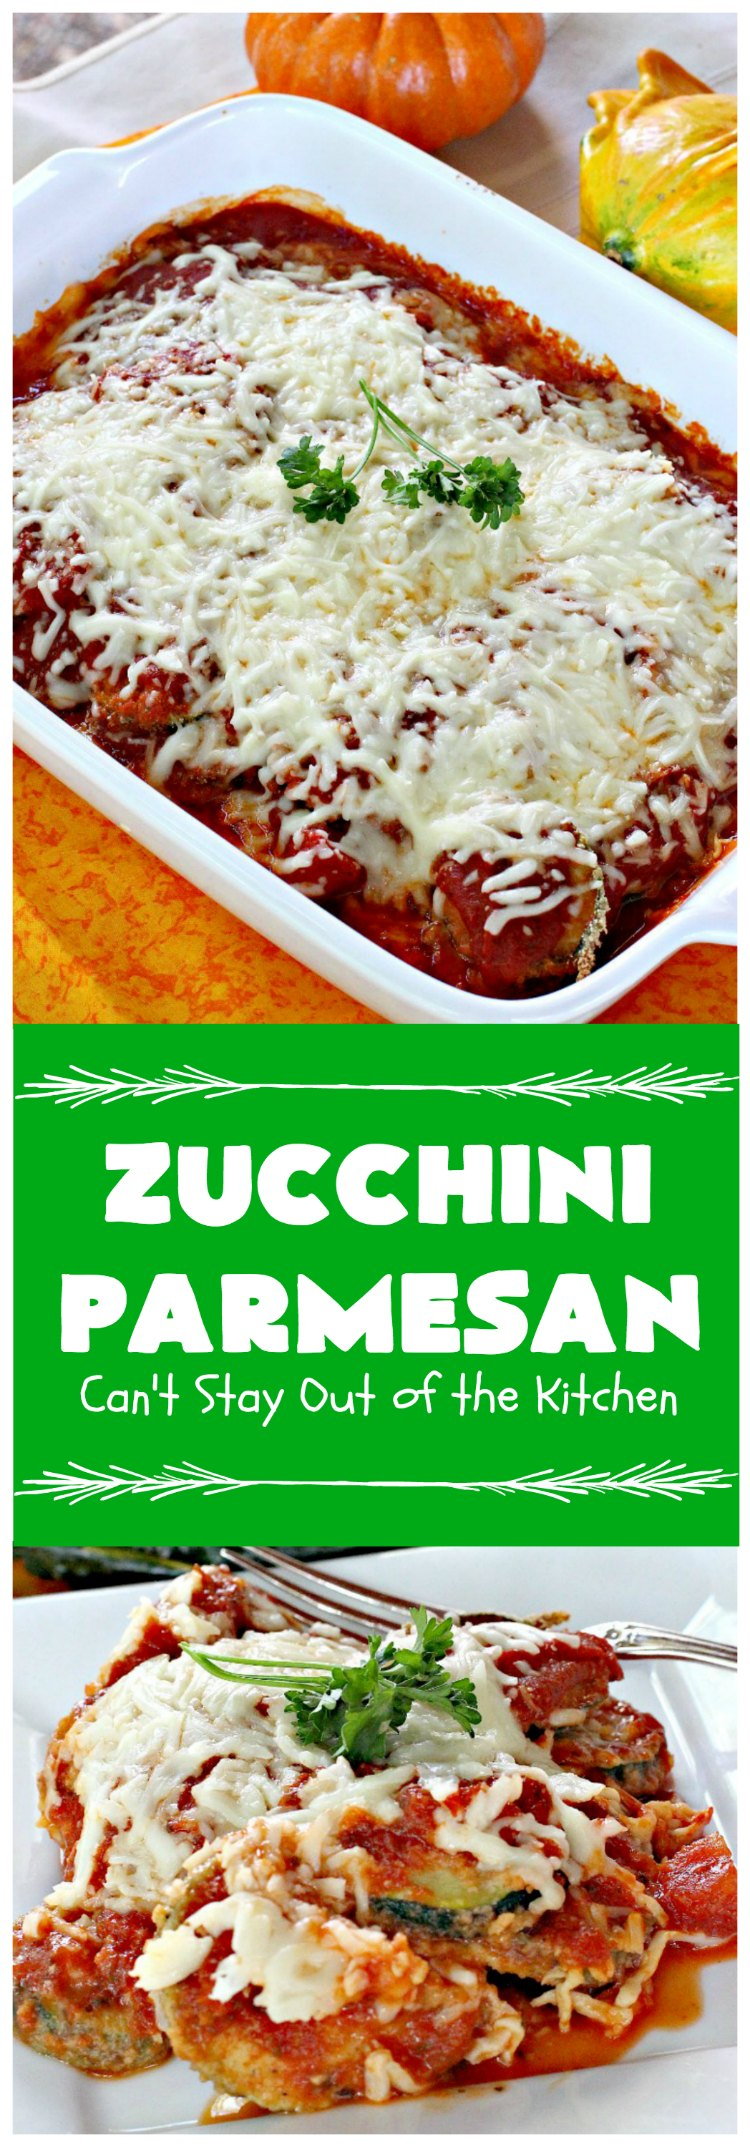 Zucchini Parmesan | Can't Stay Out of the Kitchen